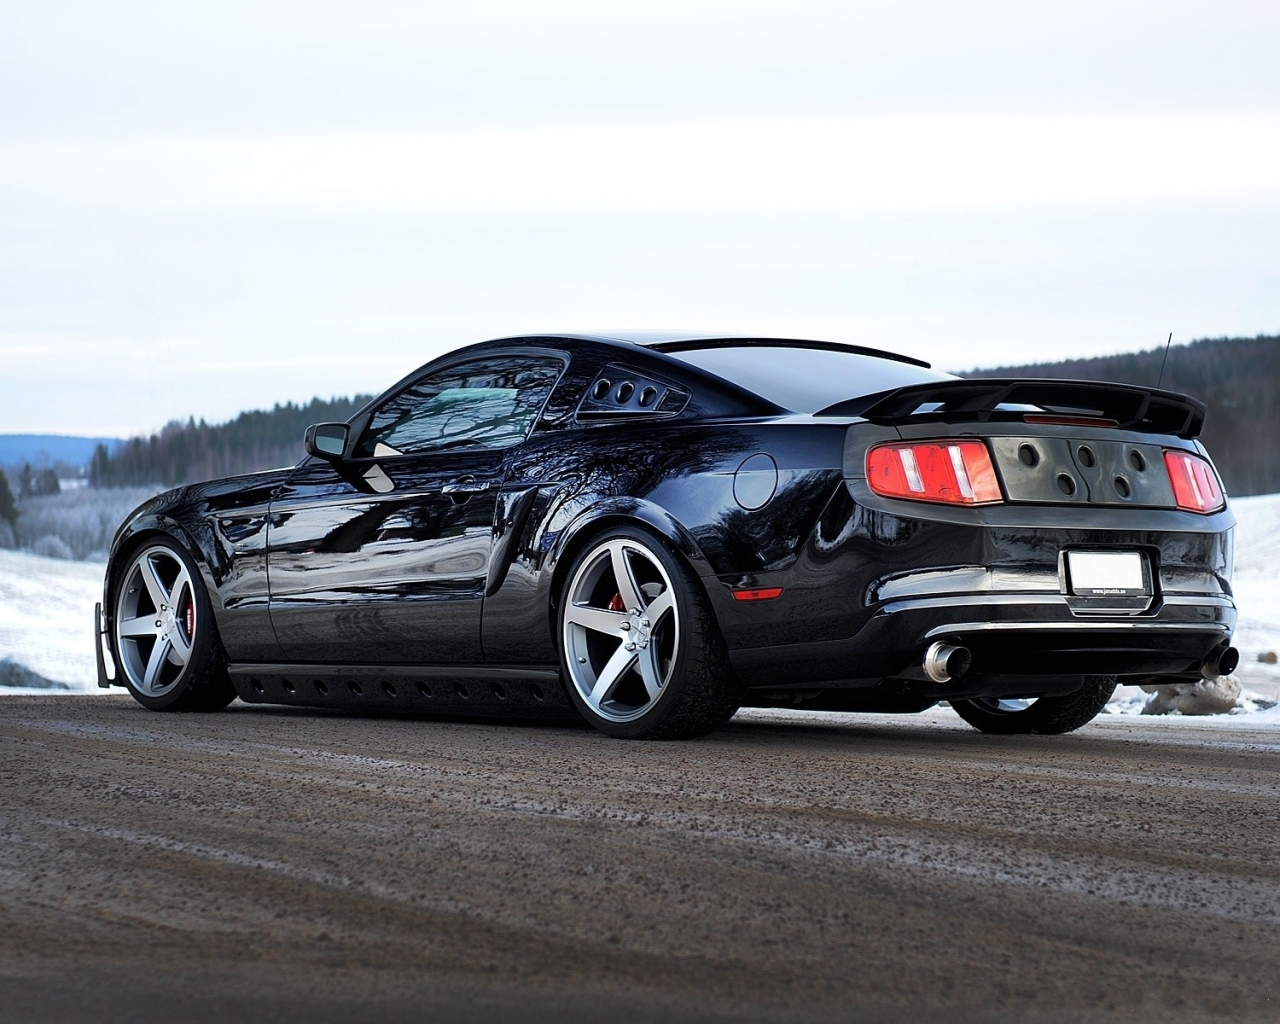 Ford Mustang GT 2013 - 1280x1024